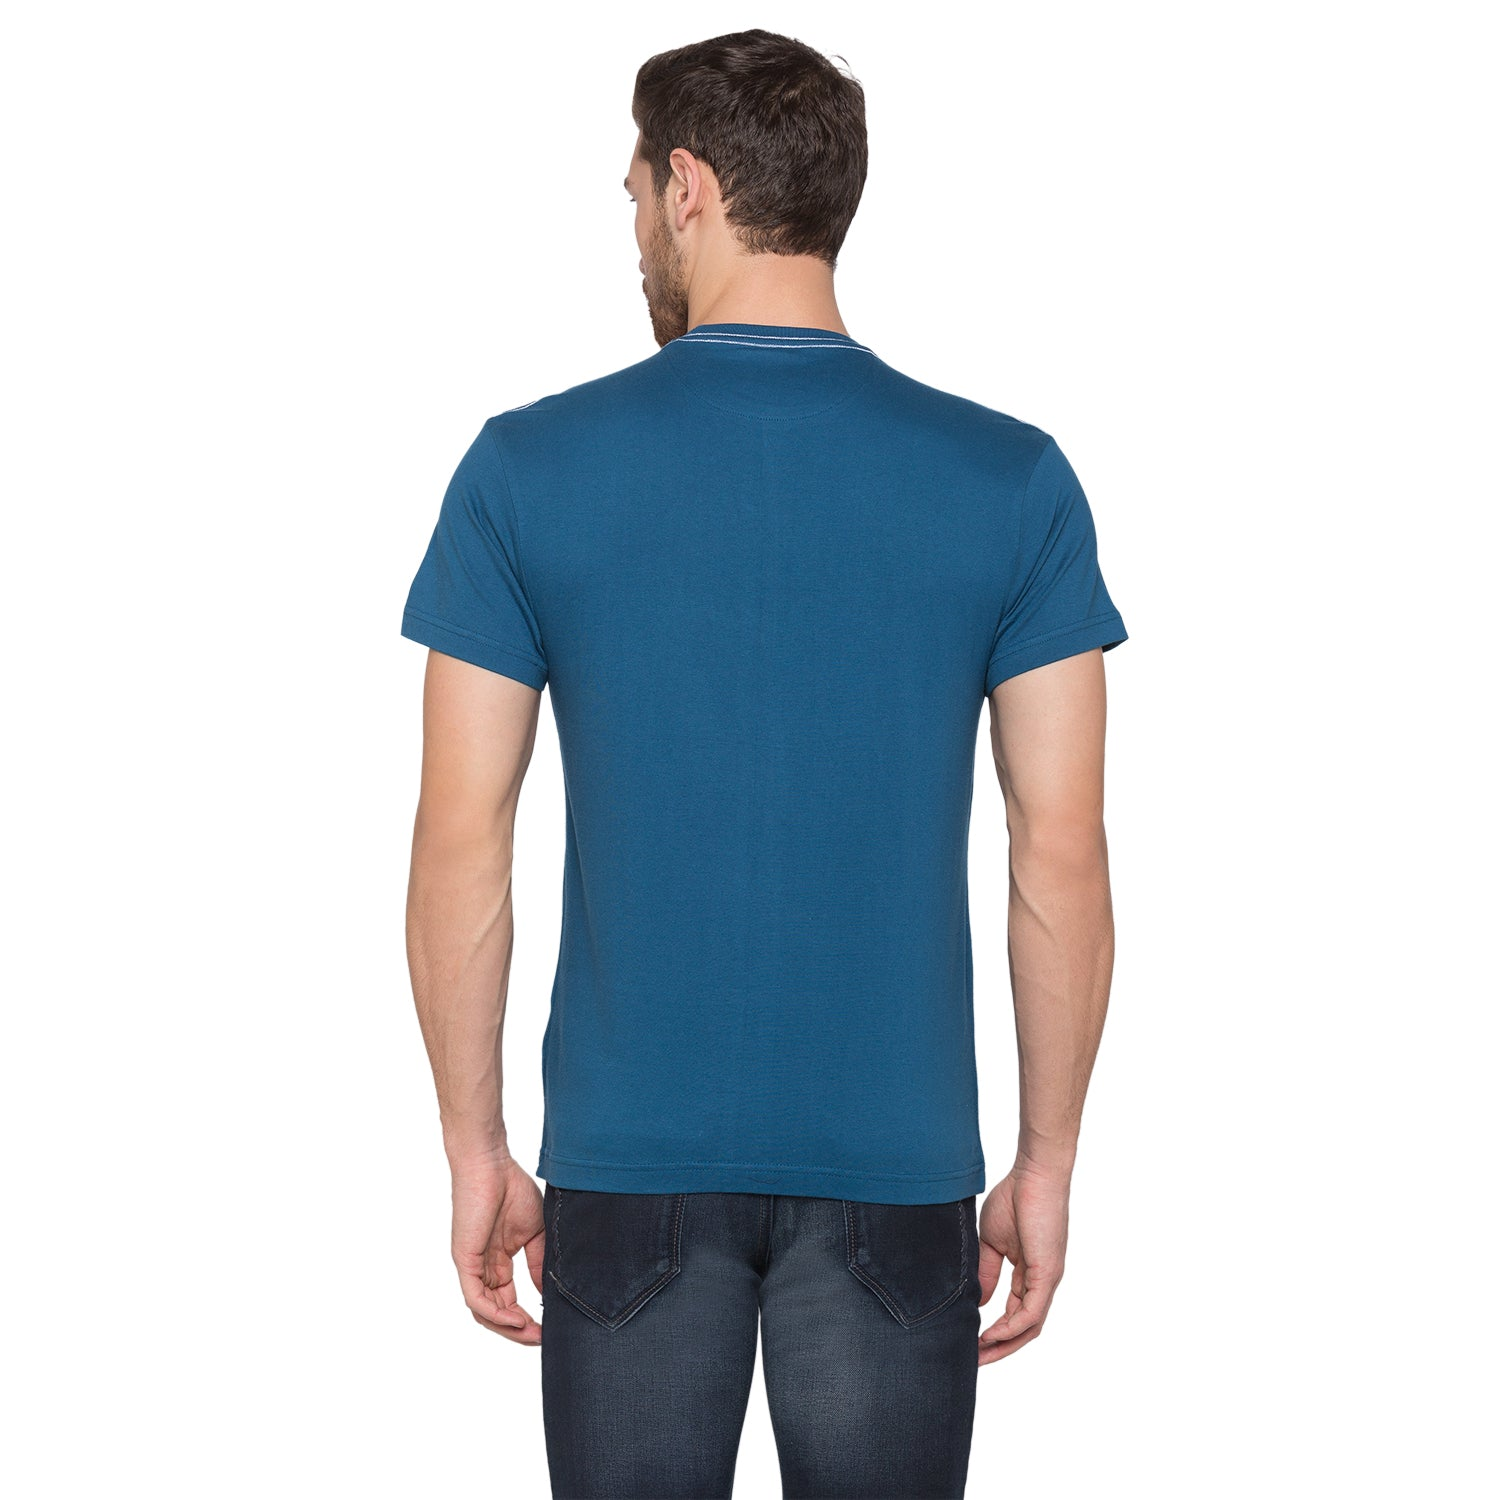 Globus Blue Graphic T-Shirt3